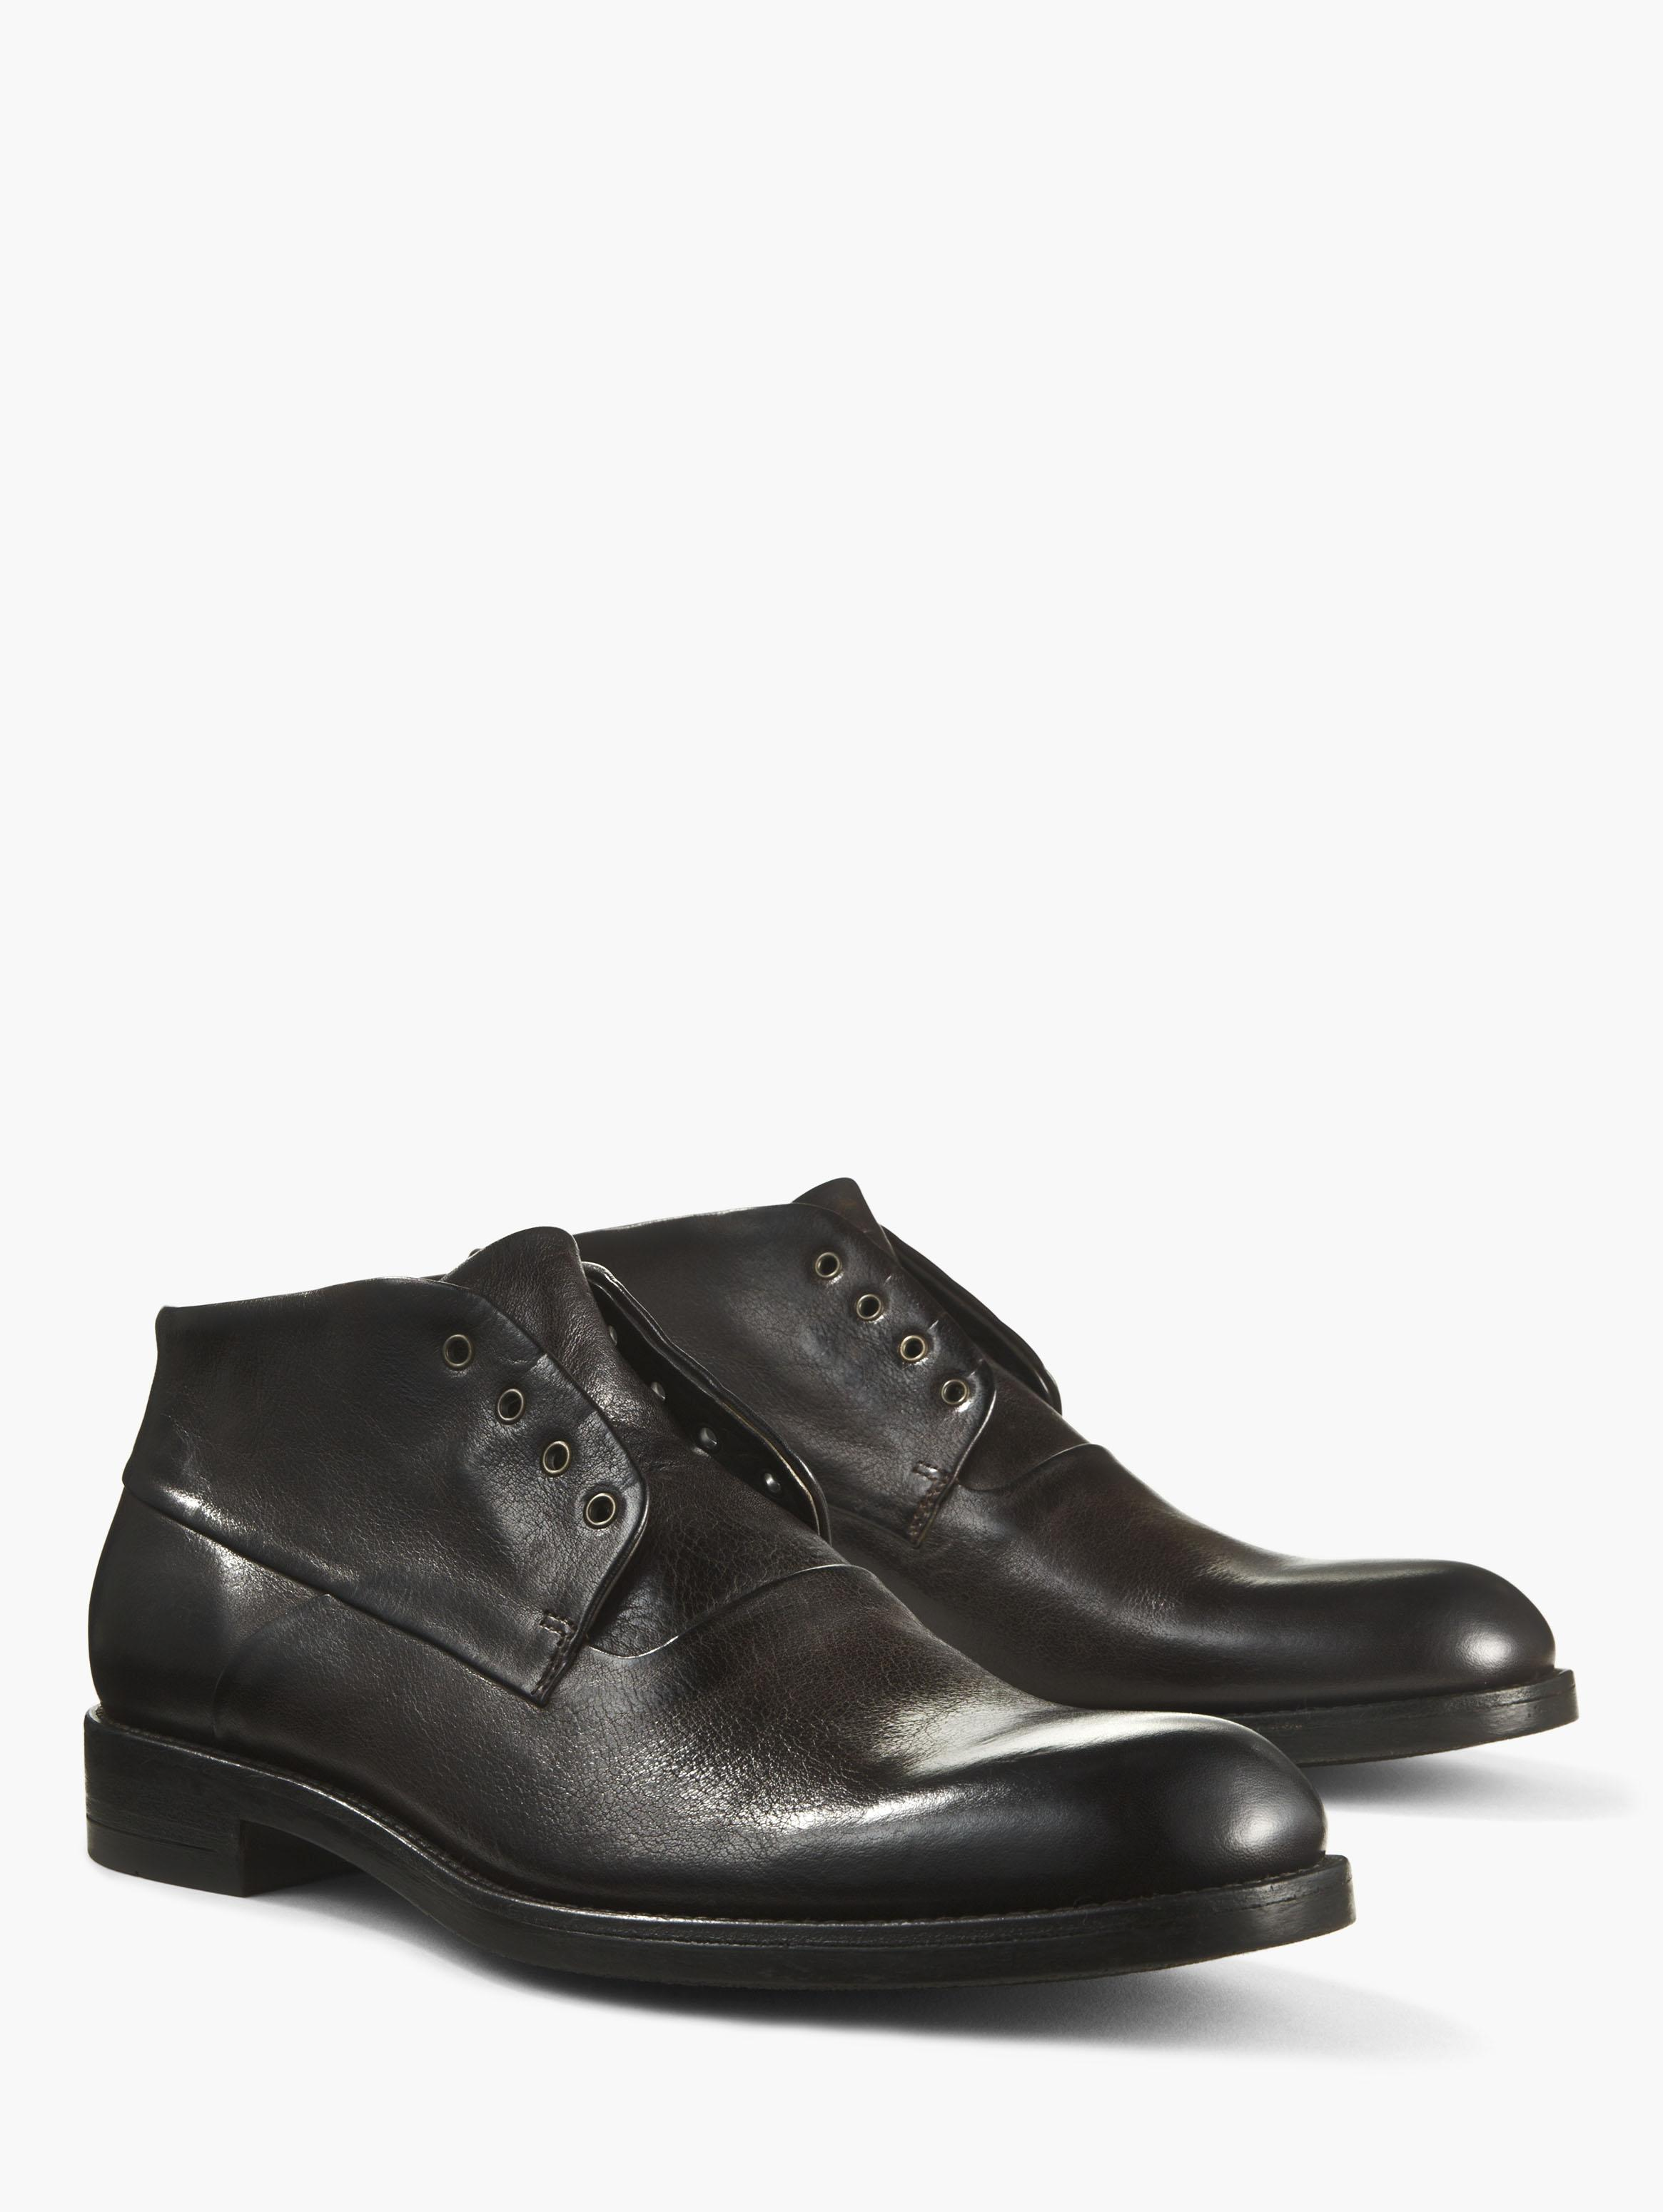 Jacob Leather Chukka